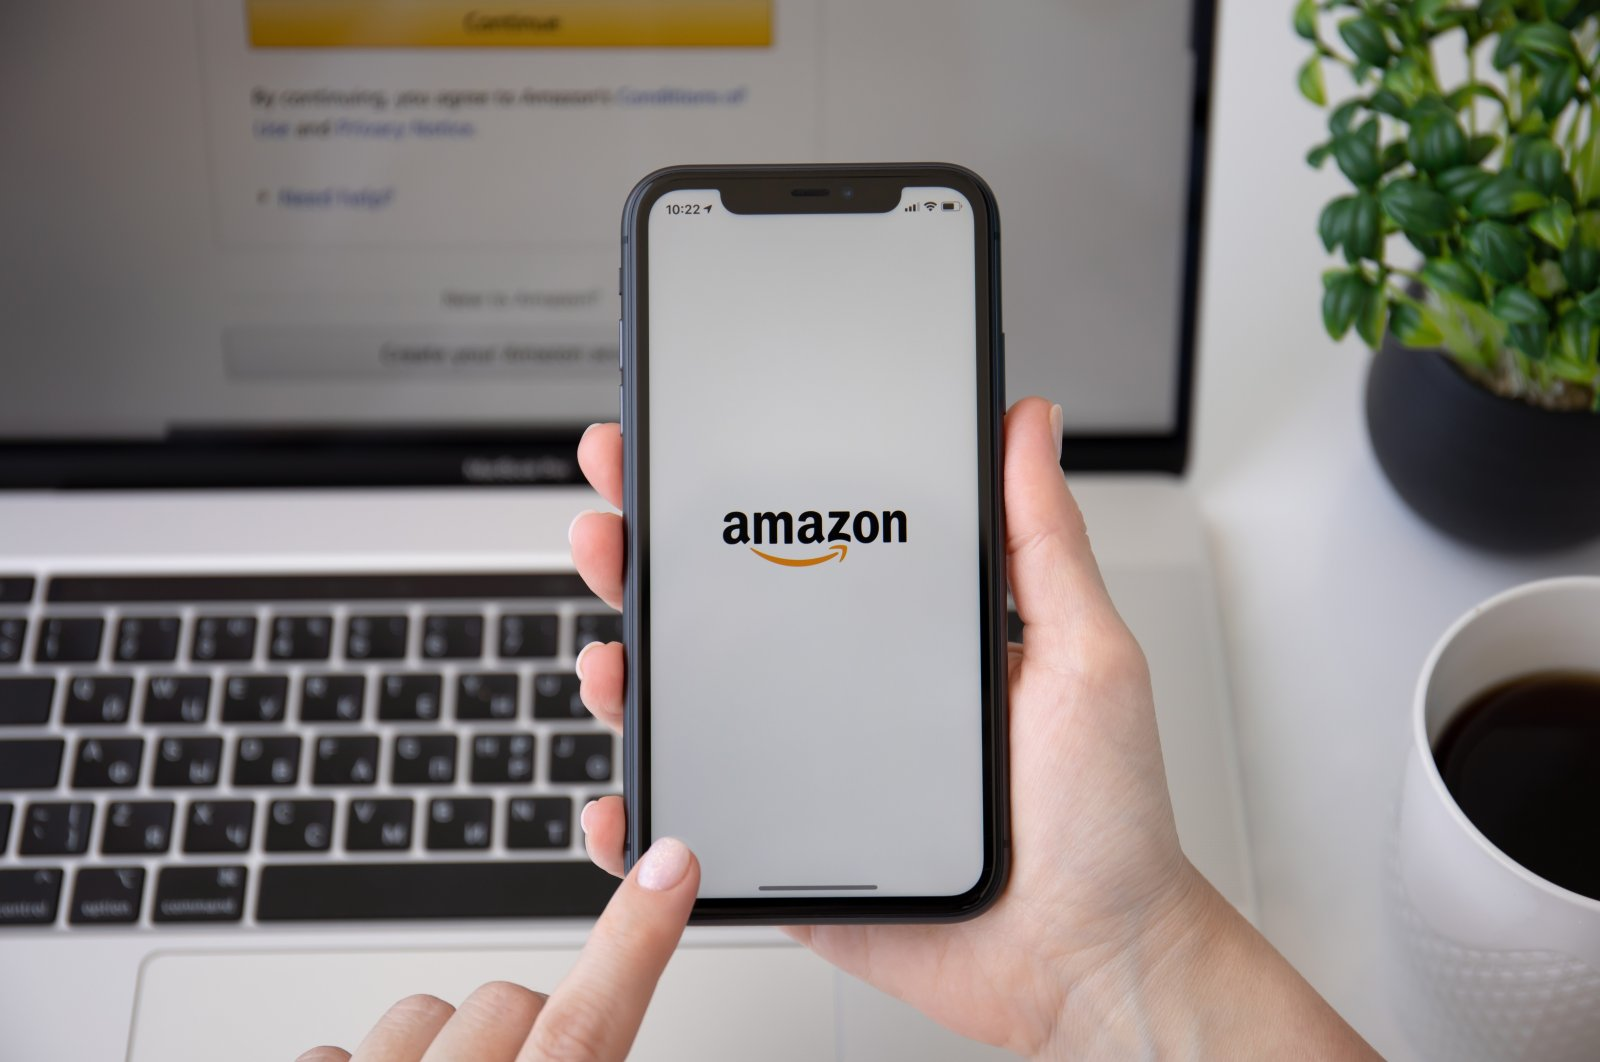 A woman holds a smartphone with the logo of online shopping service Amazon on the screen, Alanya, Turkey, June 7, 2020. (Shutterstock Photo)